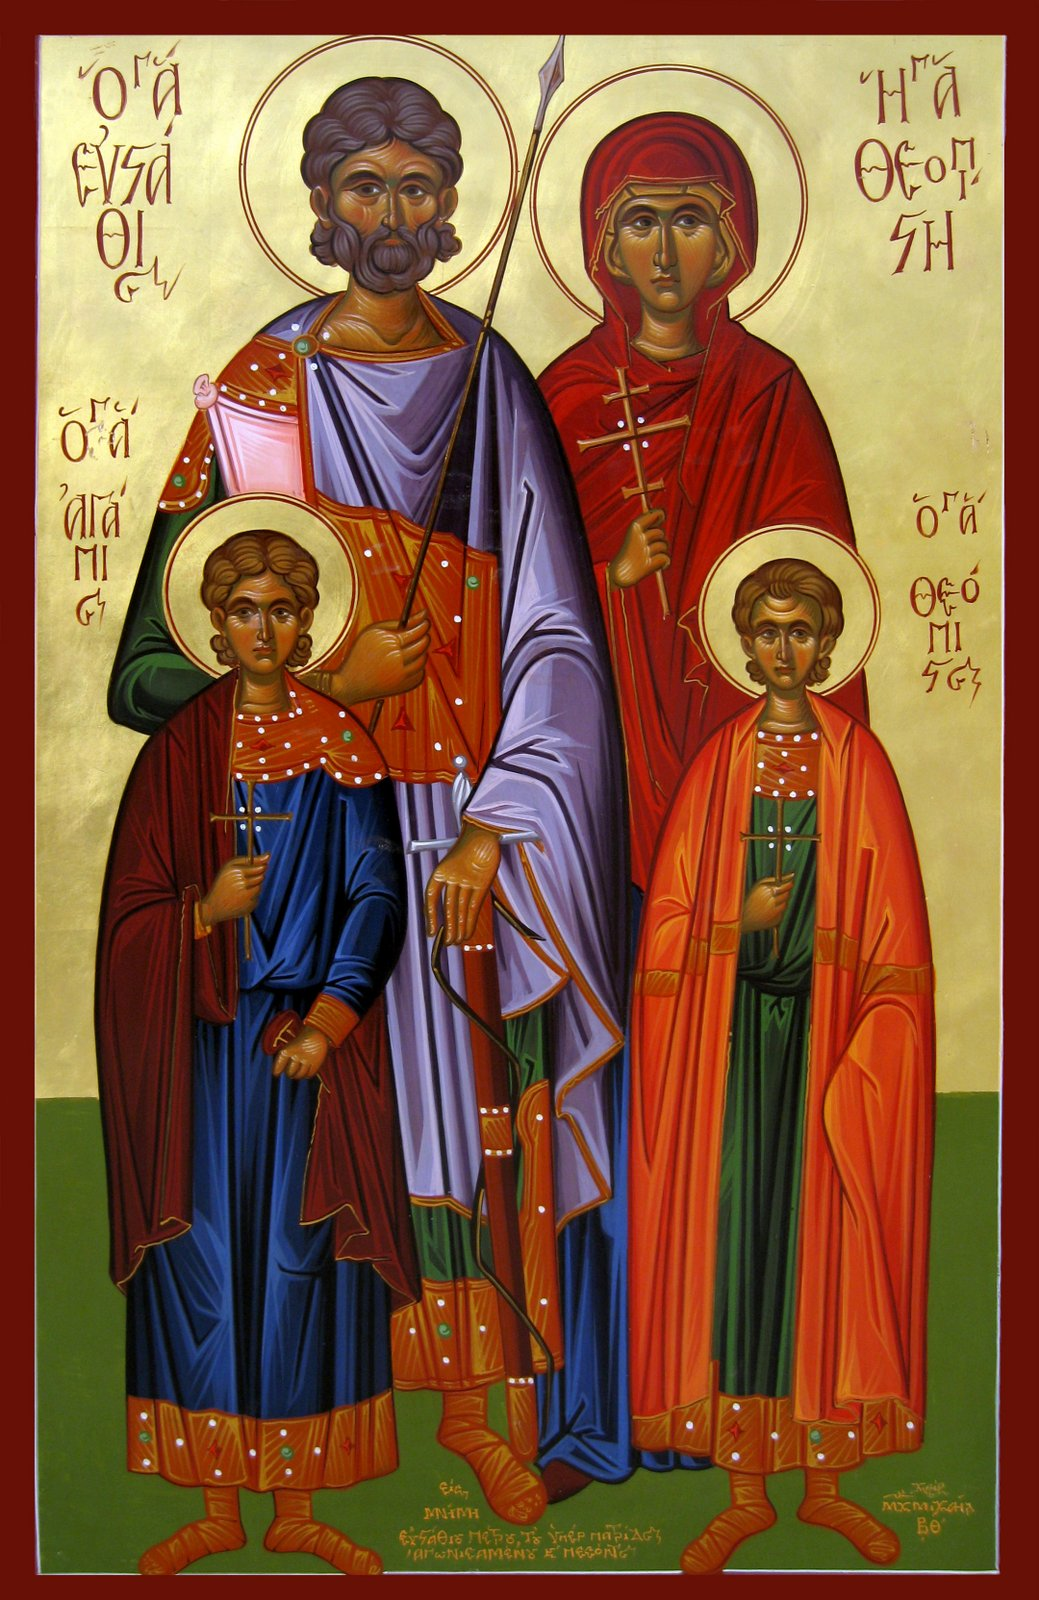 St. Evstathios and his family